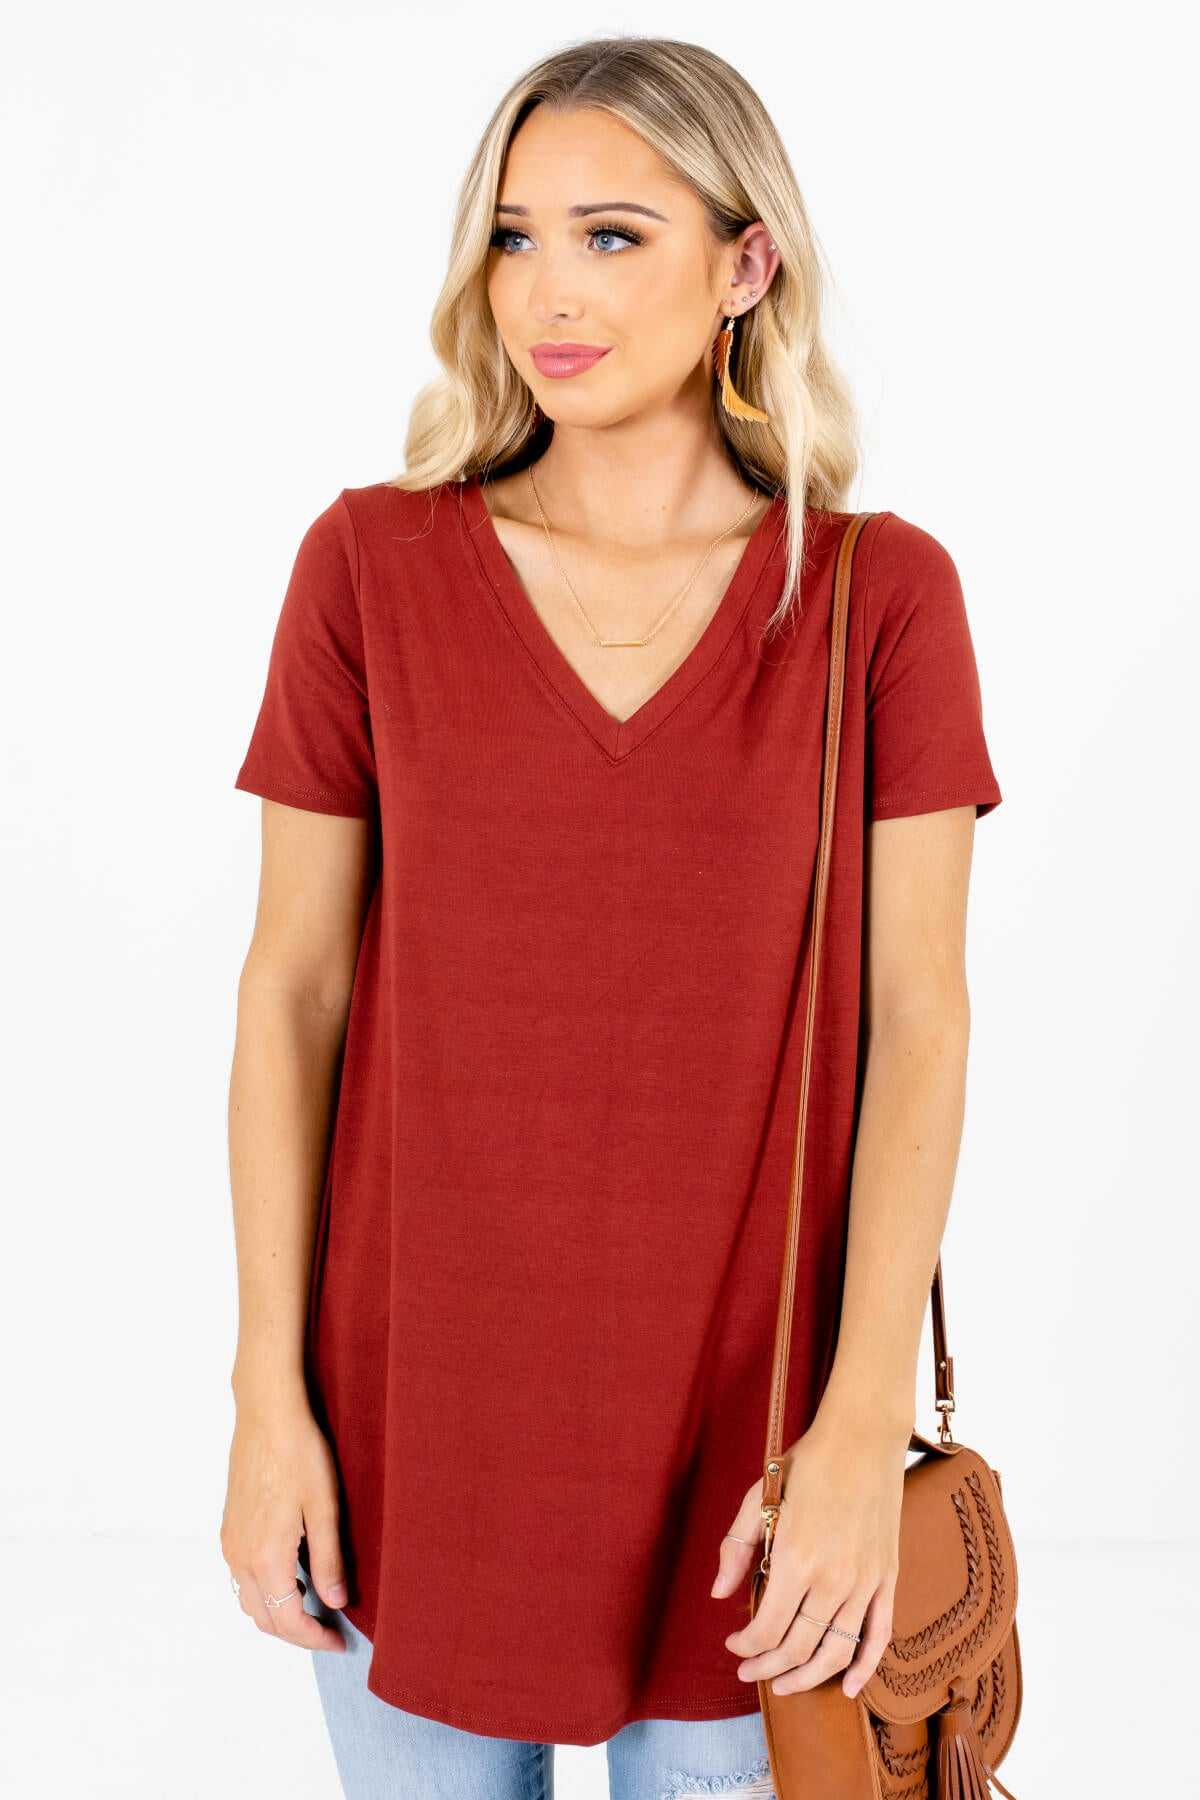 Rust Orange V-Neckline Boutique Tops for Women